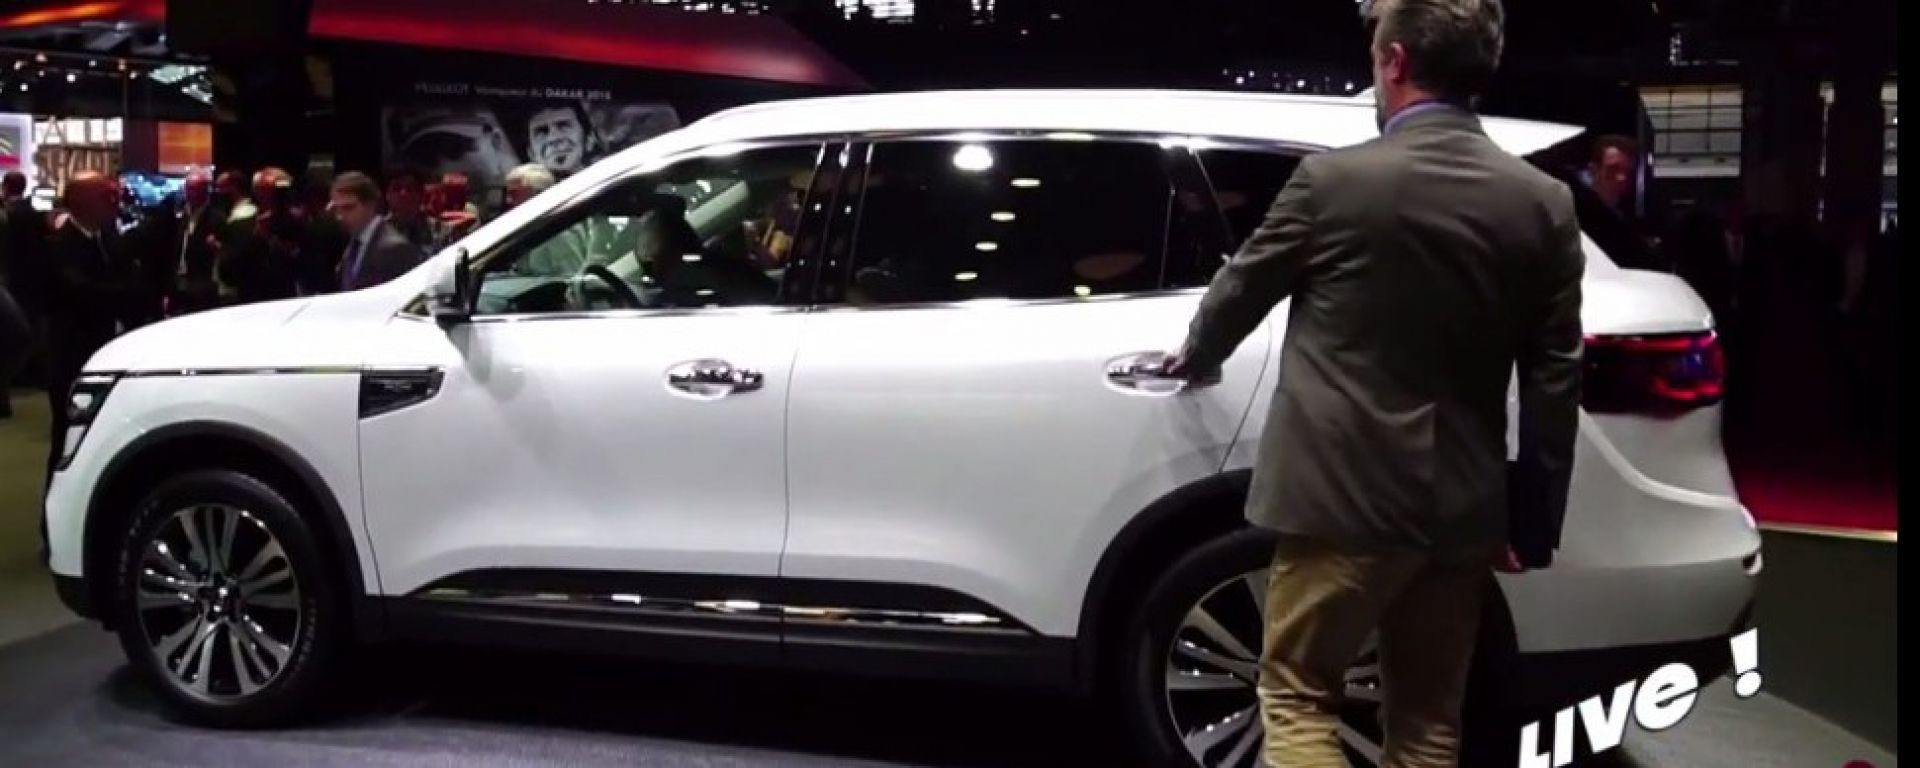 Live Parigi 2016: Renault Koleos, Megane e Trezor Concept in video